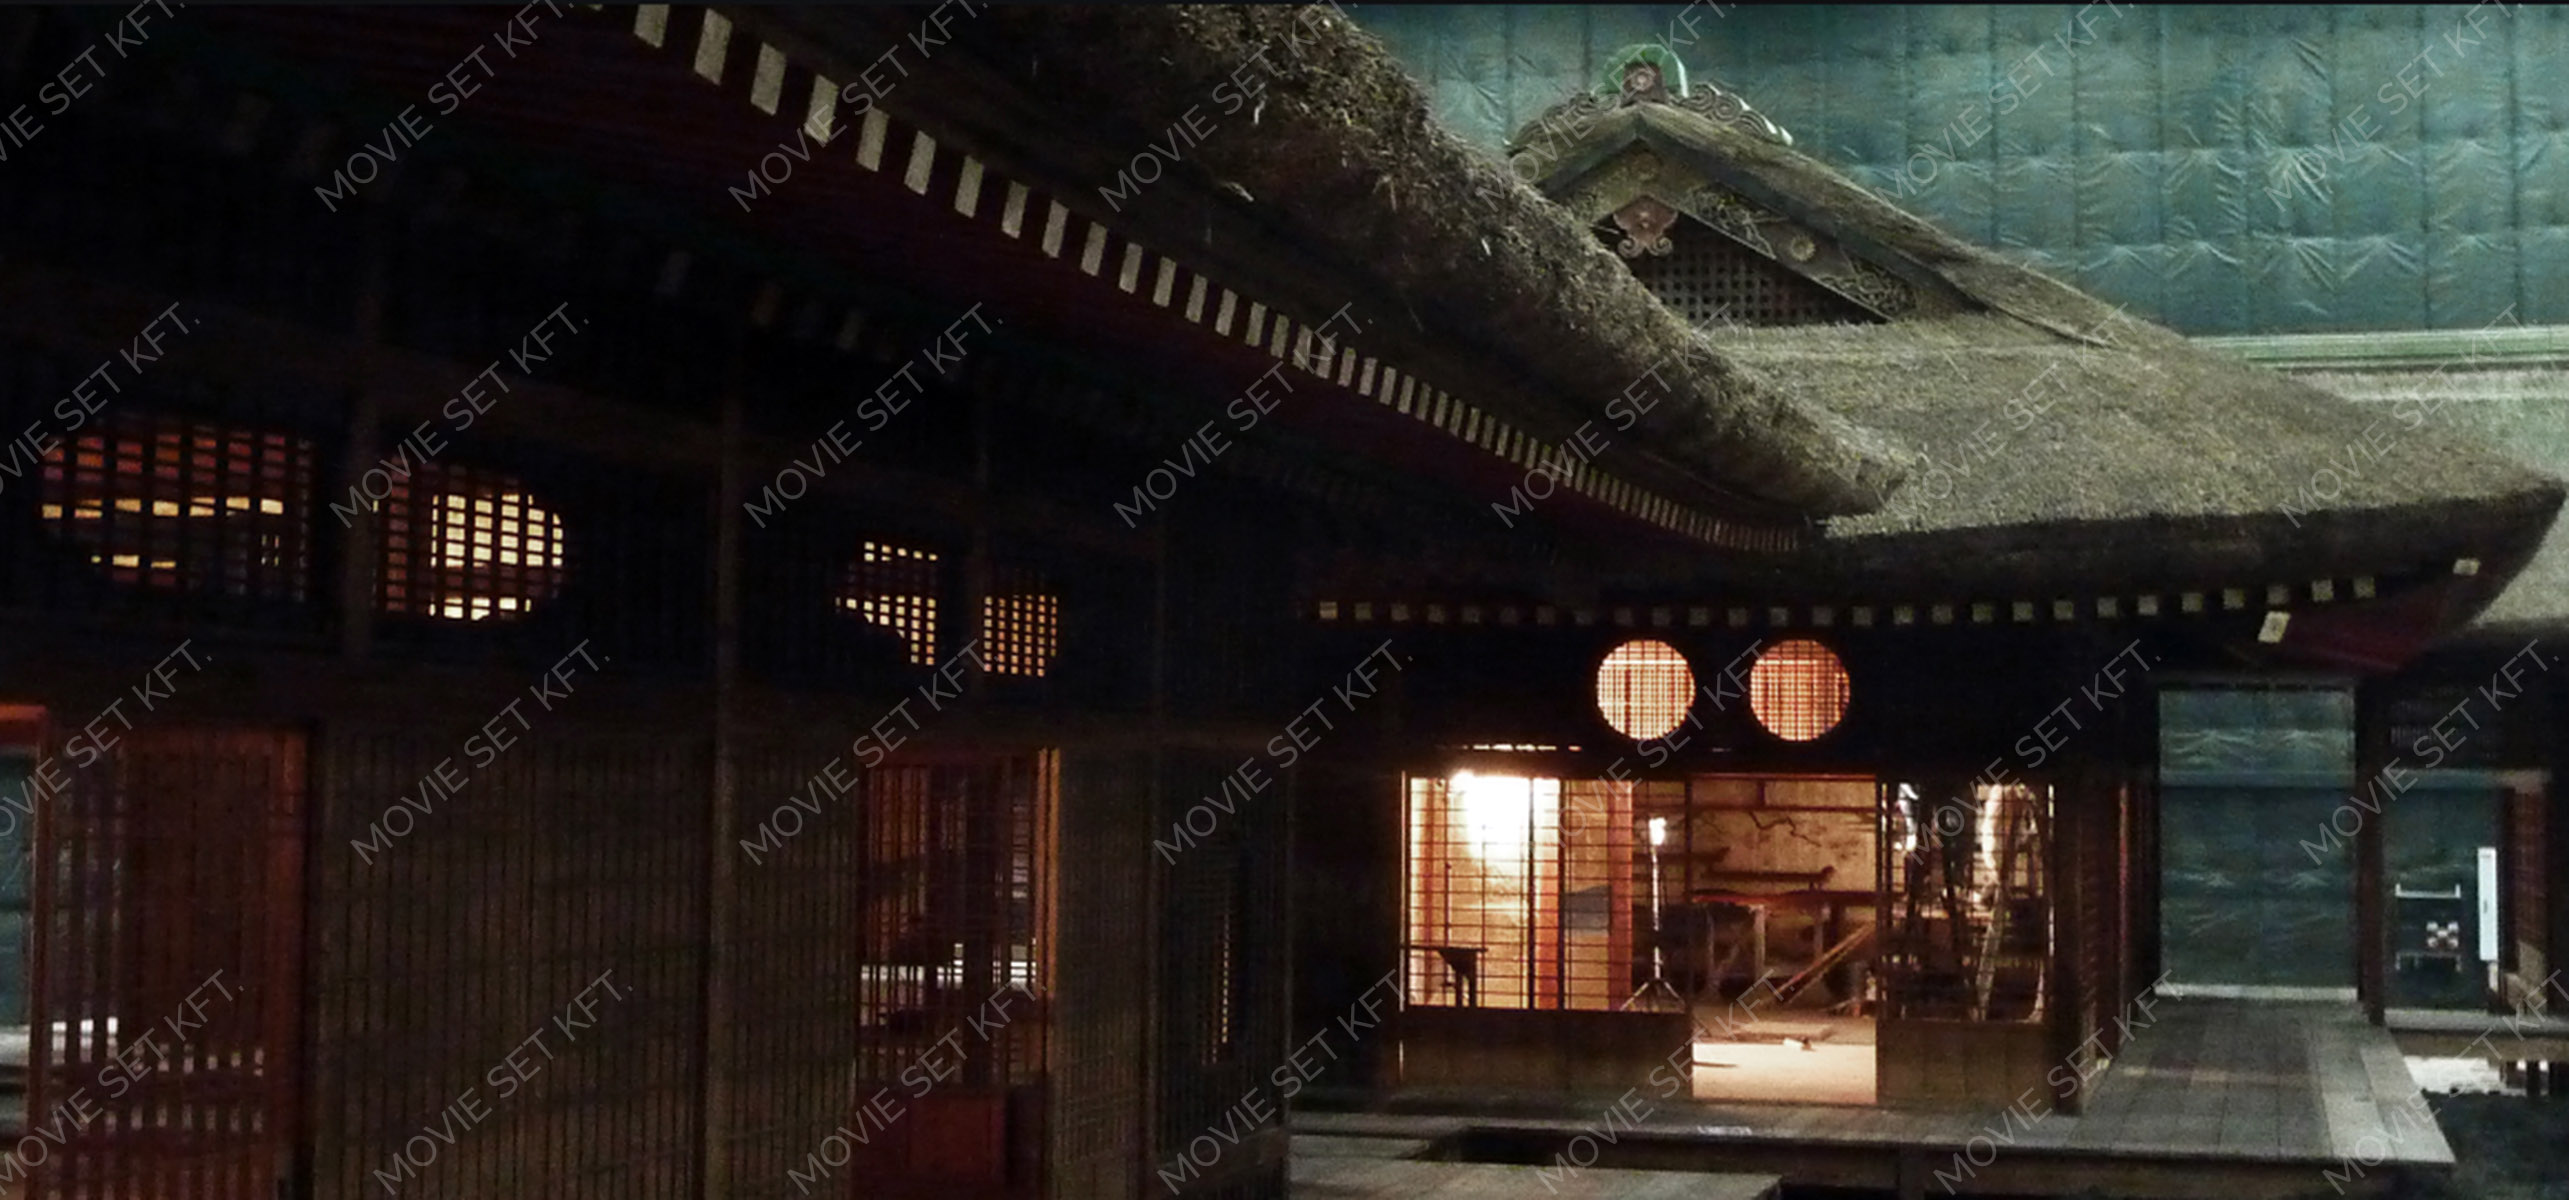 47 Ronin – Movie Set díszlet expedíció